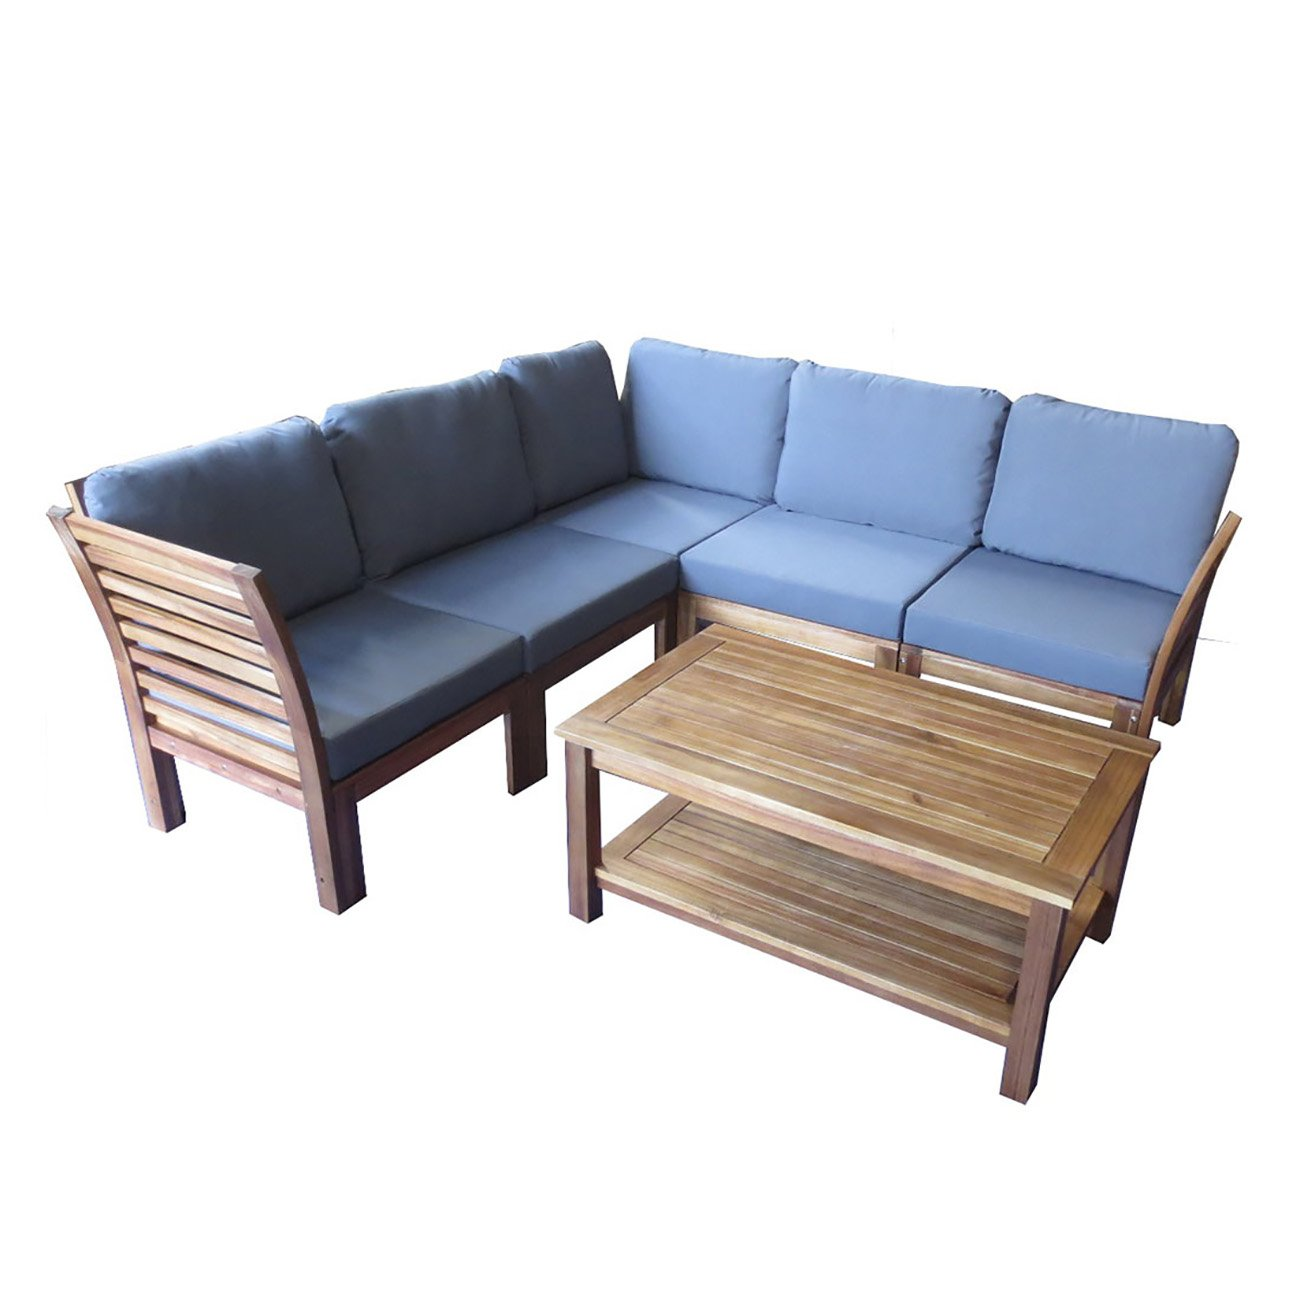 outdoor sofa holz free rio with outdoor sofa holz interesting outdoor sofa and outdoor sofa. Black Bedroom Furniture Sets. Home Design Ideas